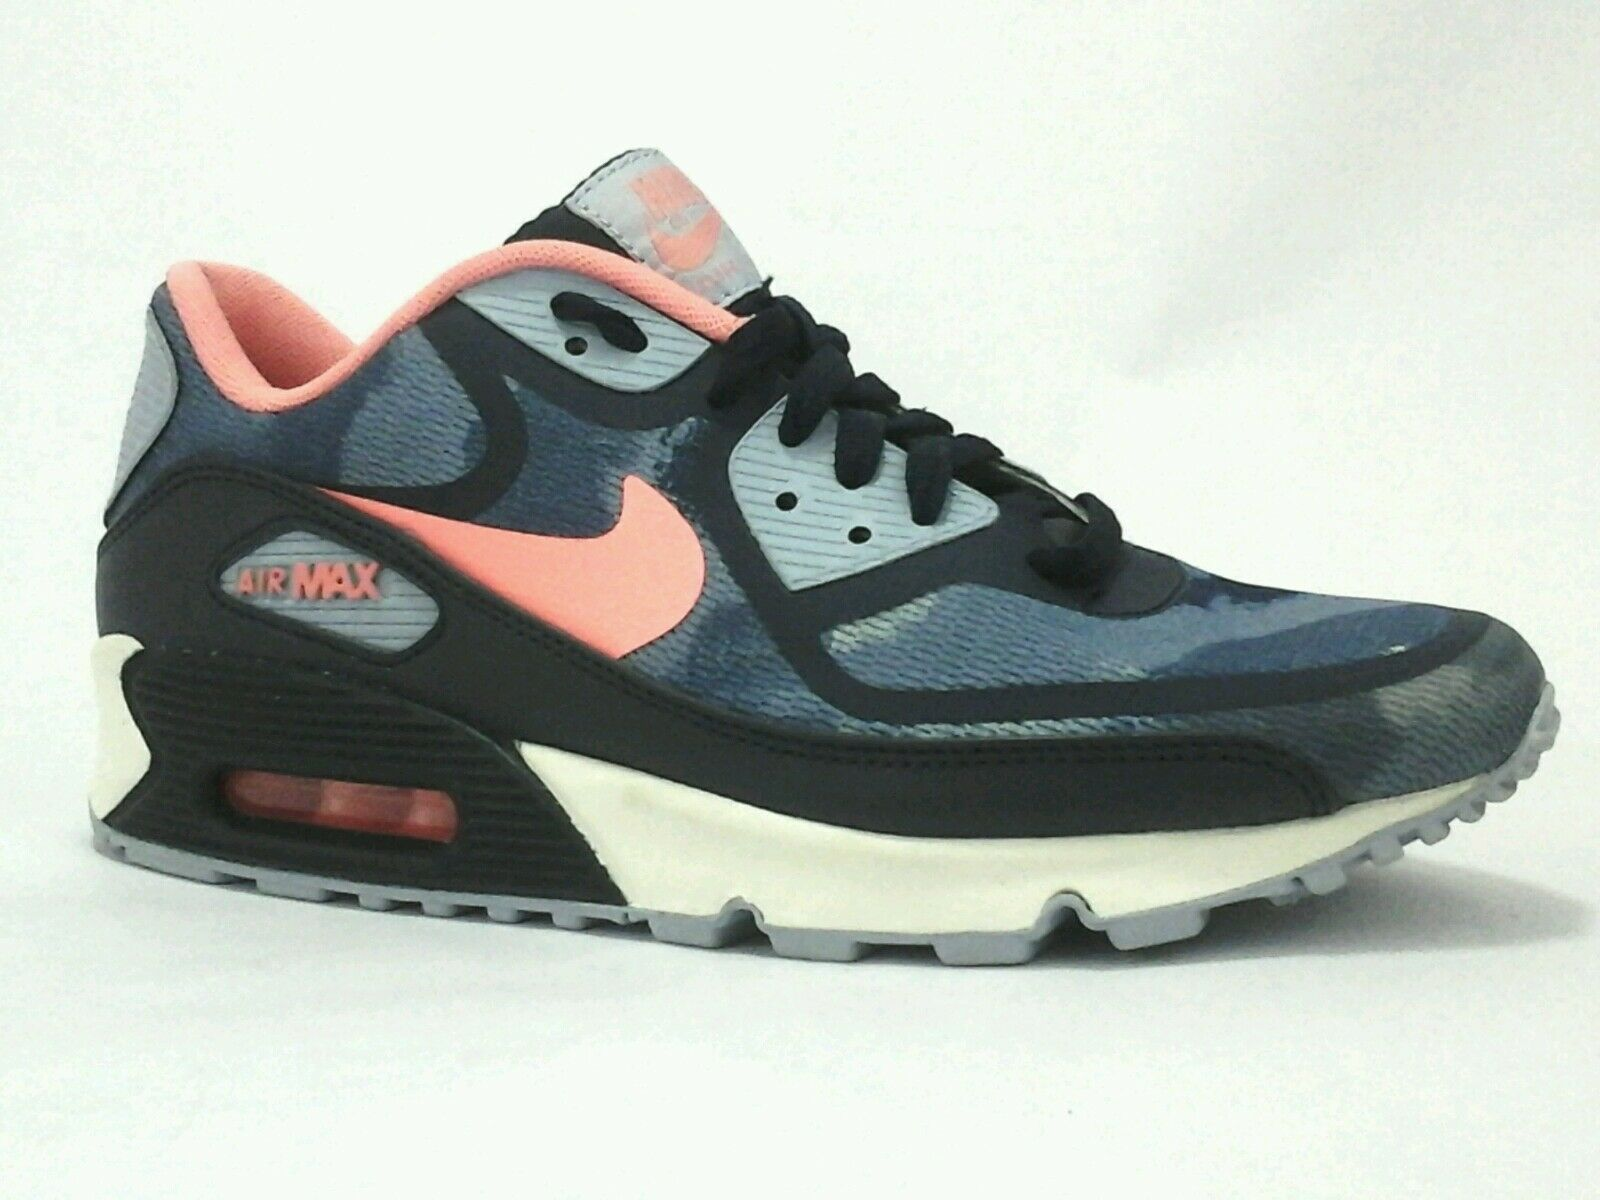 NIKE AIR MAX Camo Shoes Rare Edition Blue Sneakers Women's US 8 M